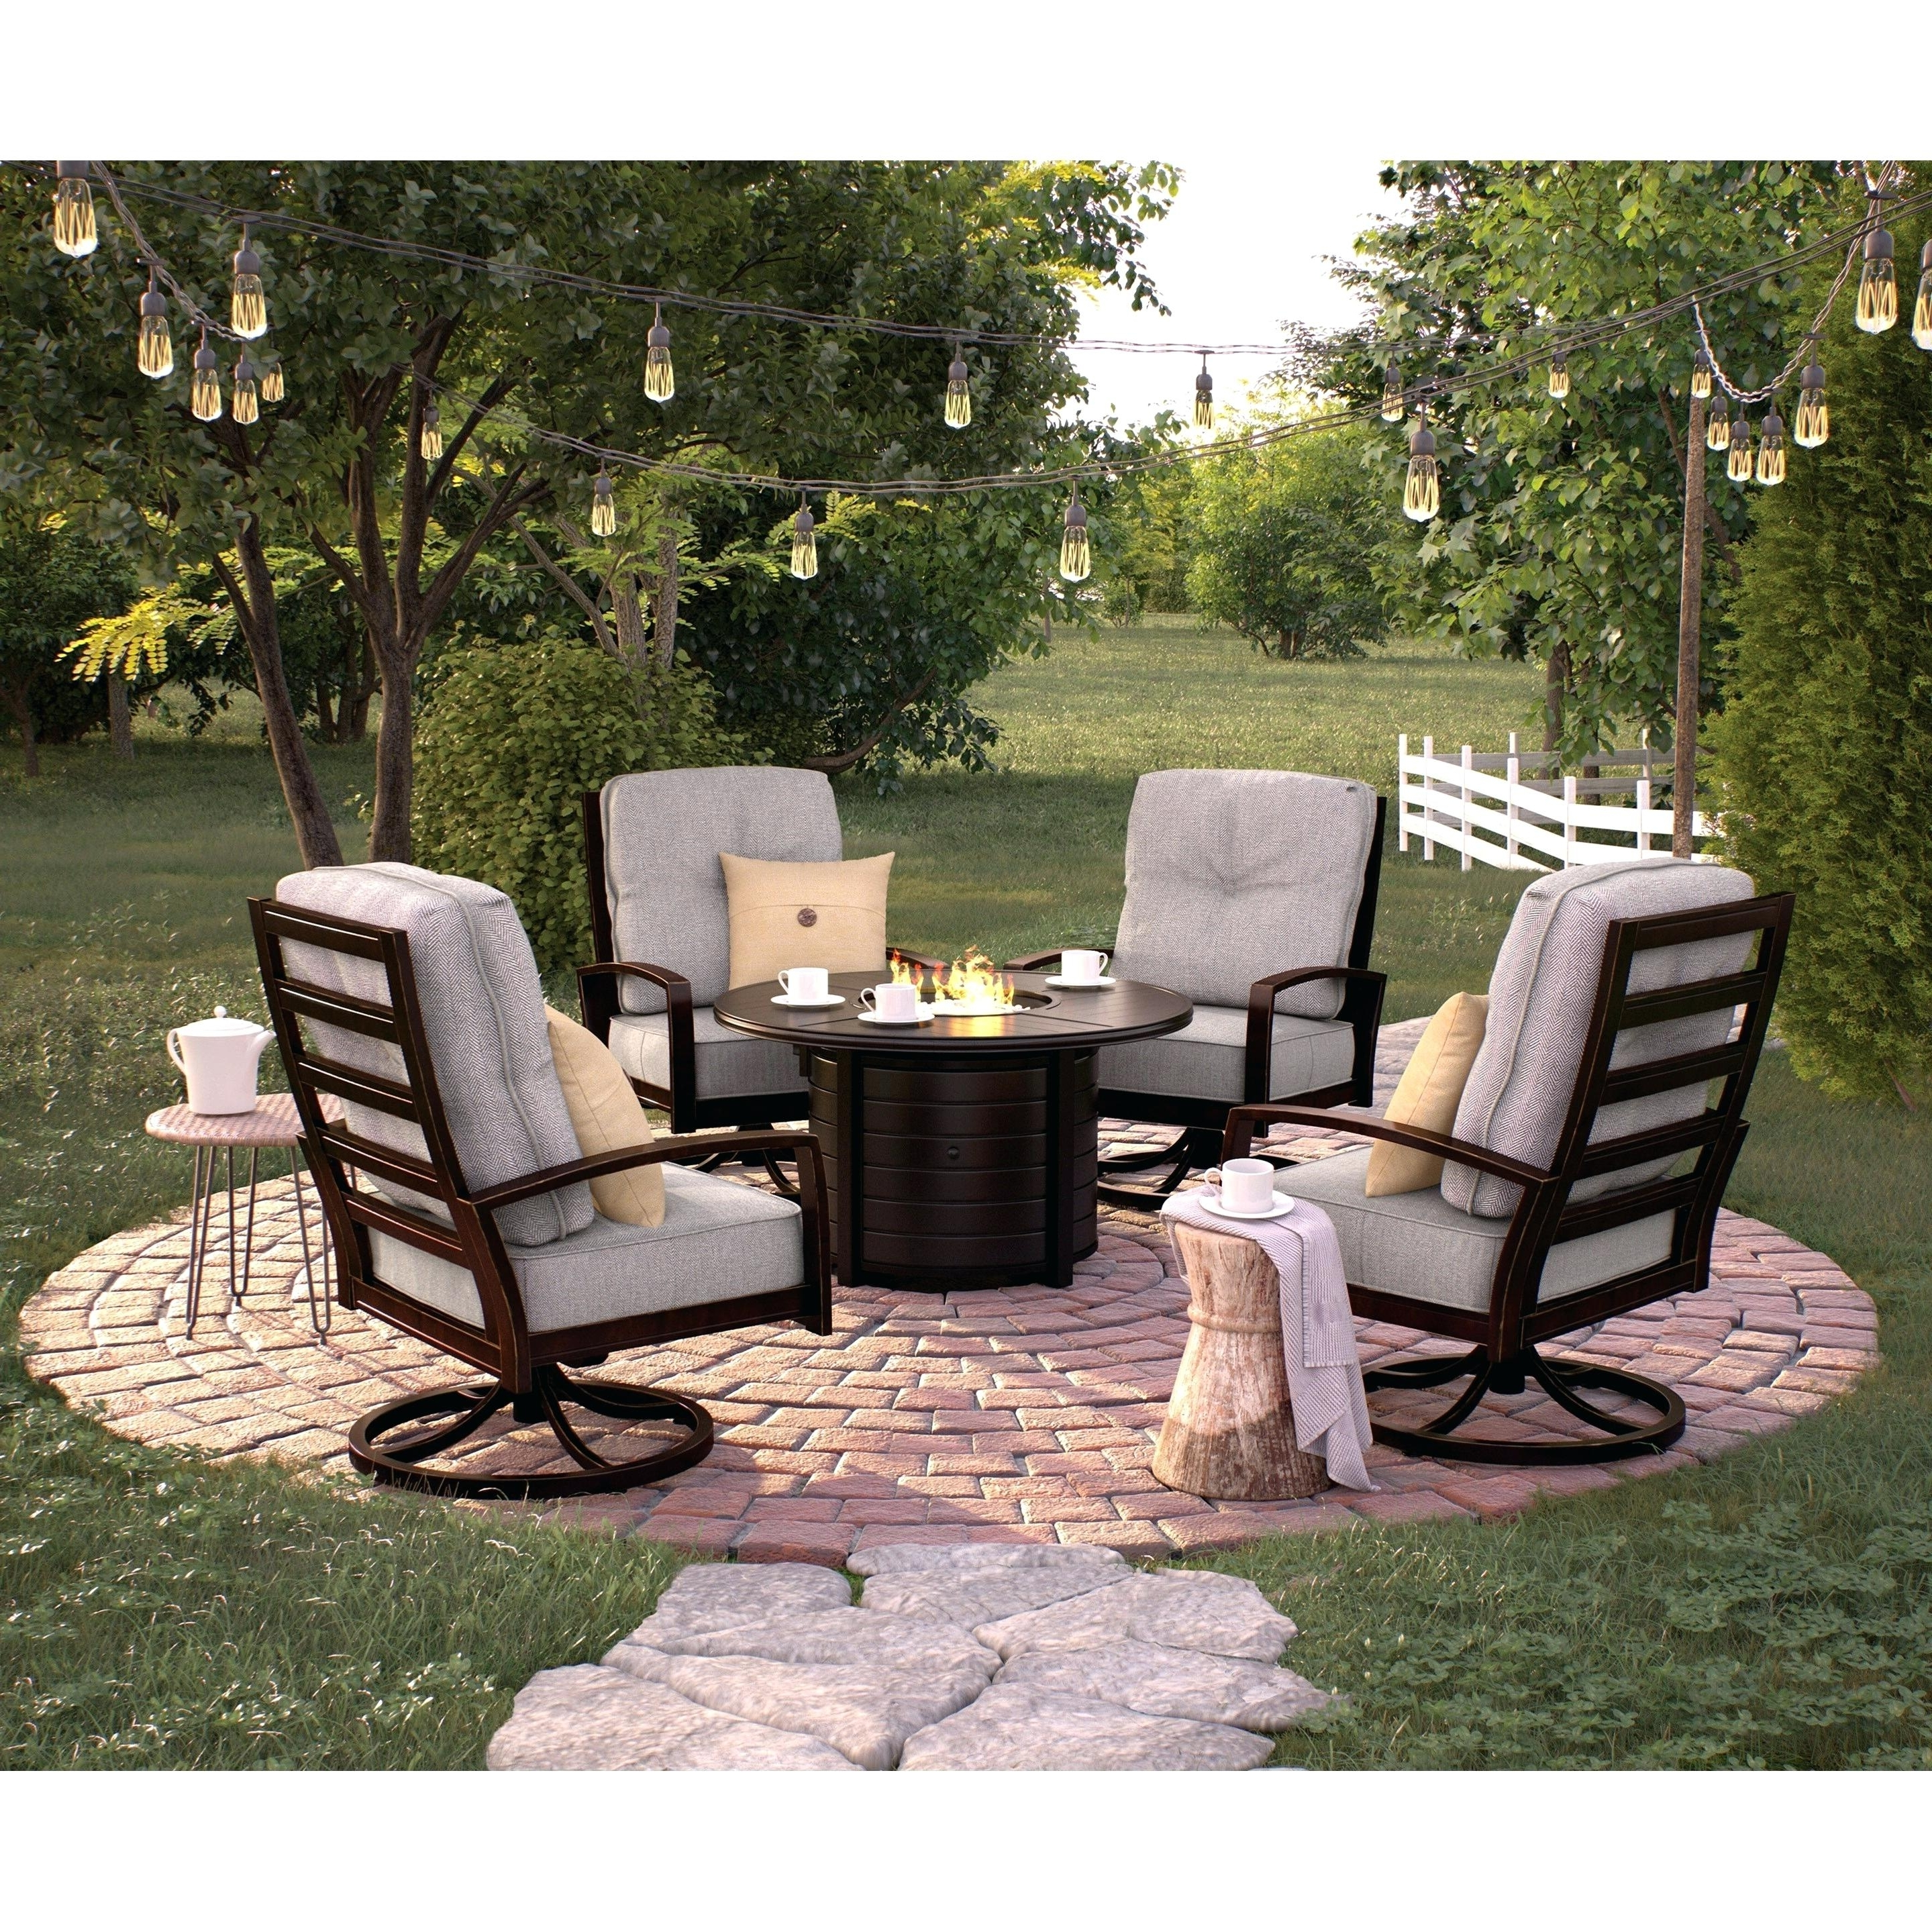 Patio Conversation Sets At Target With Regard To Most Recent Target Patio Furniture Conversation Sets Wayfair Patio Furniture (View 9 of 15)